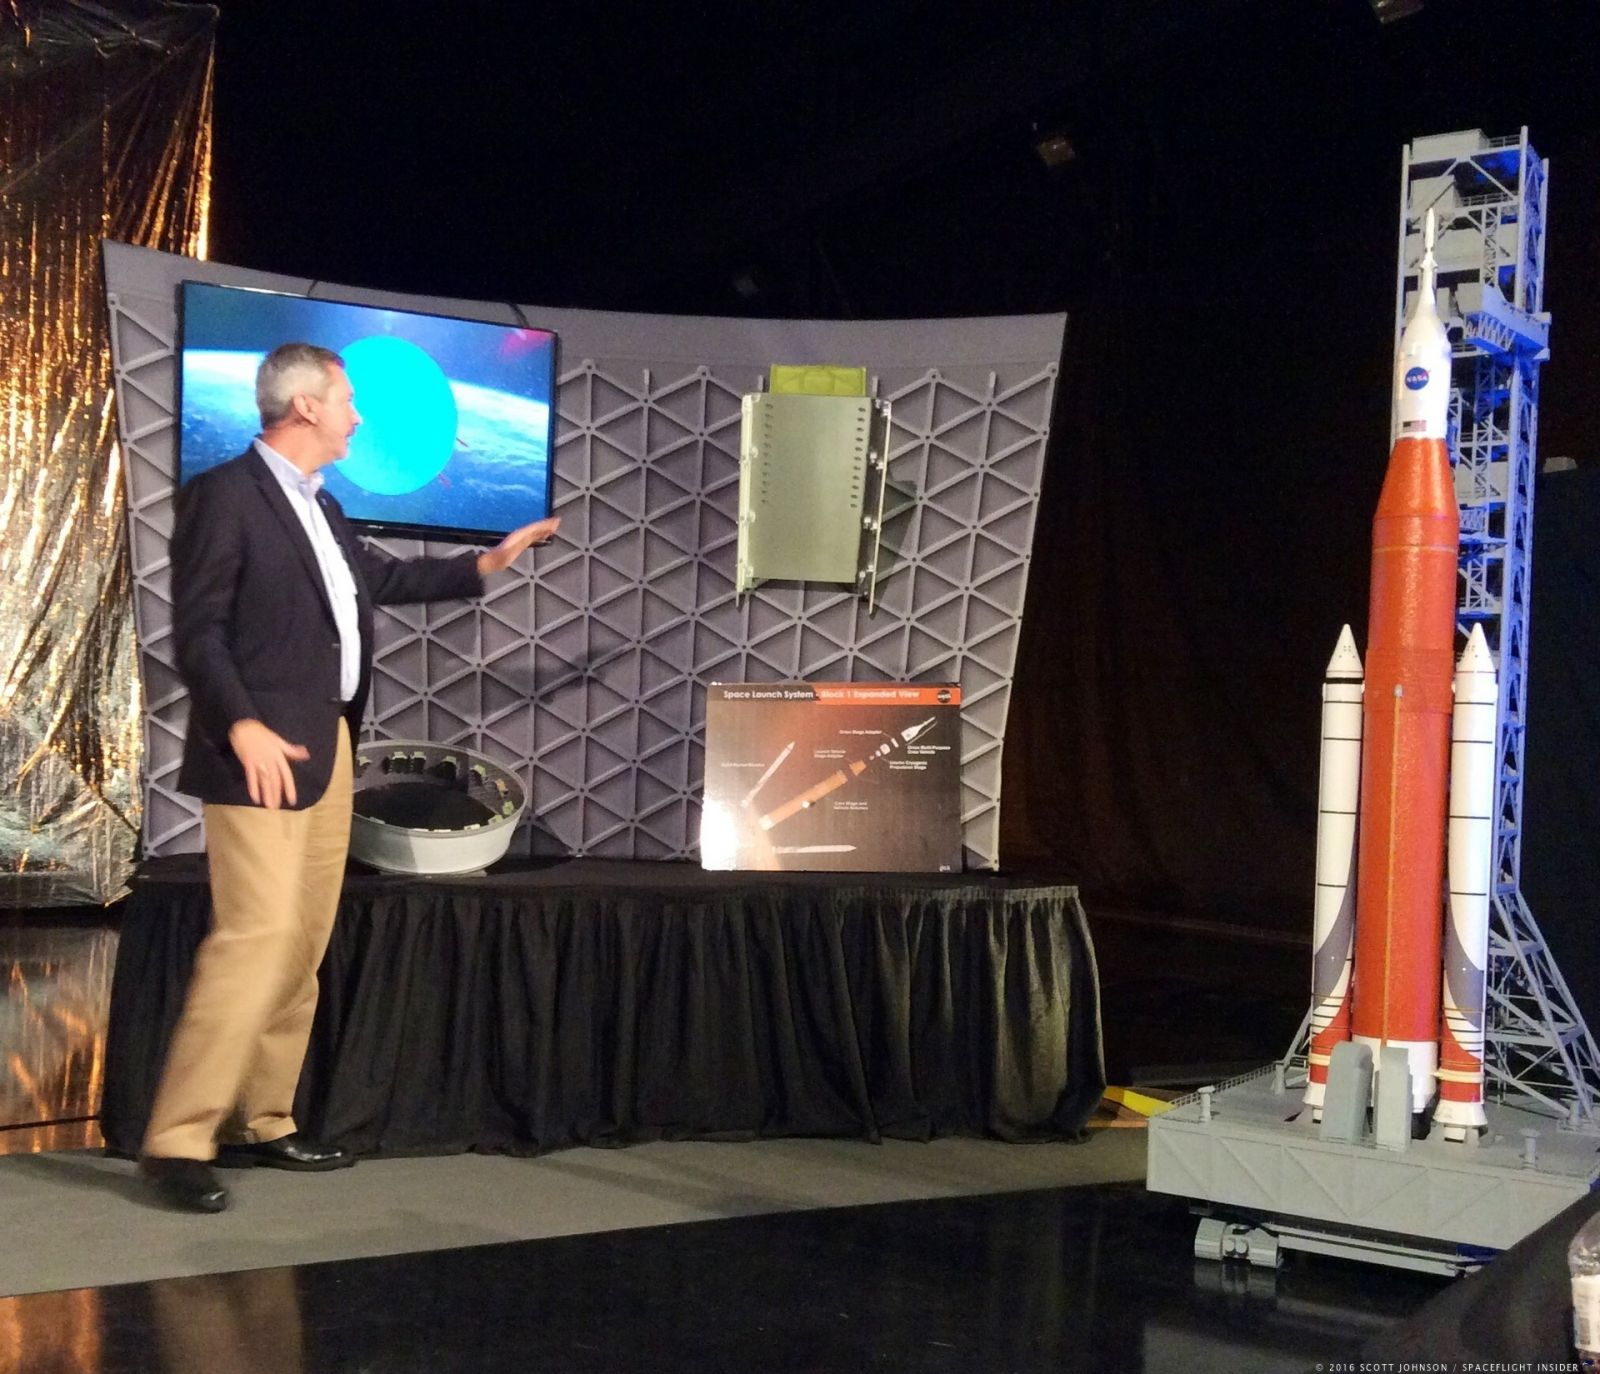 Chris Crumbly, manager of the Space Launch System Spacecraft and Payload Integration/Evolution Office at Marshall discusses how the CubeSats will be deployed via SLS. Photo Credit: Scott Johnson / SpaceFlight Insider